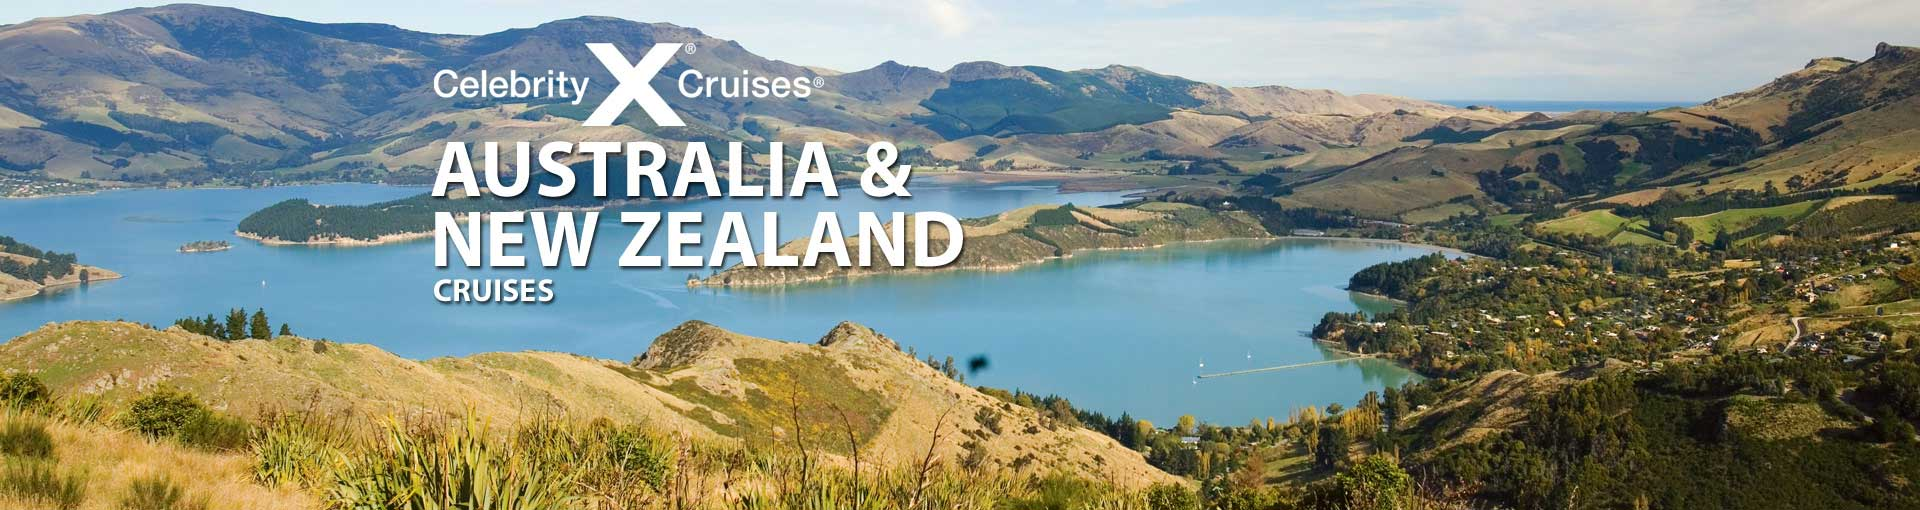 Australia & New Zealand Shore Excursions | Celebrity Cruises